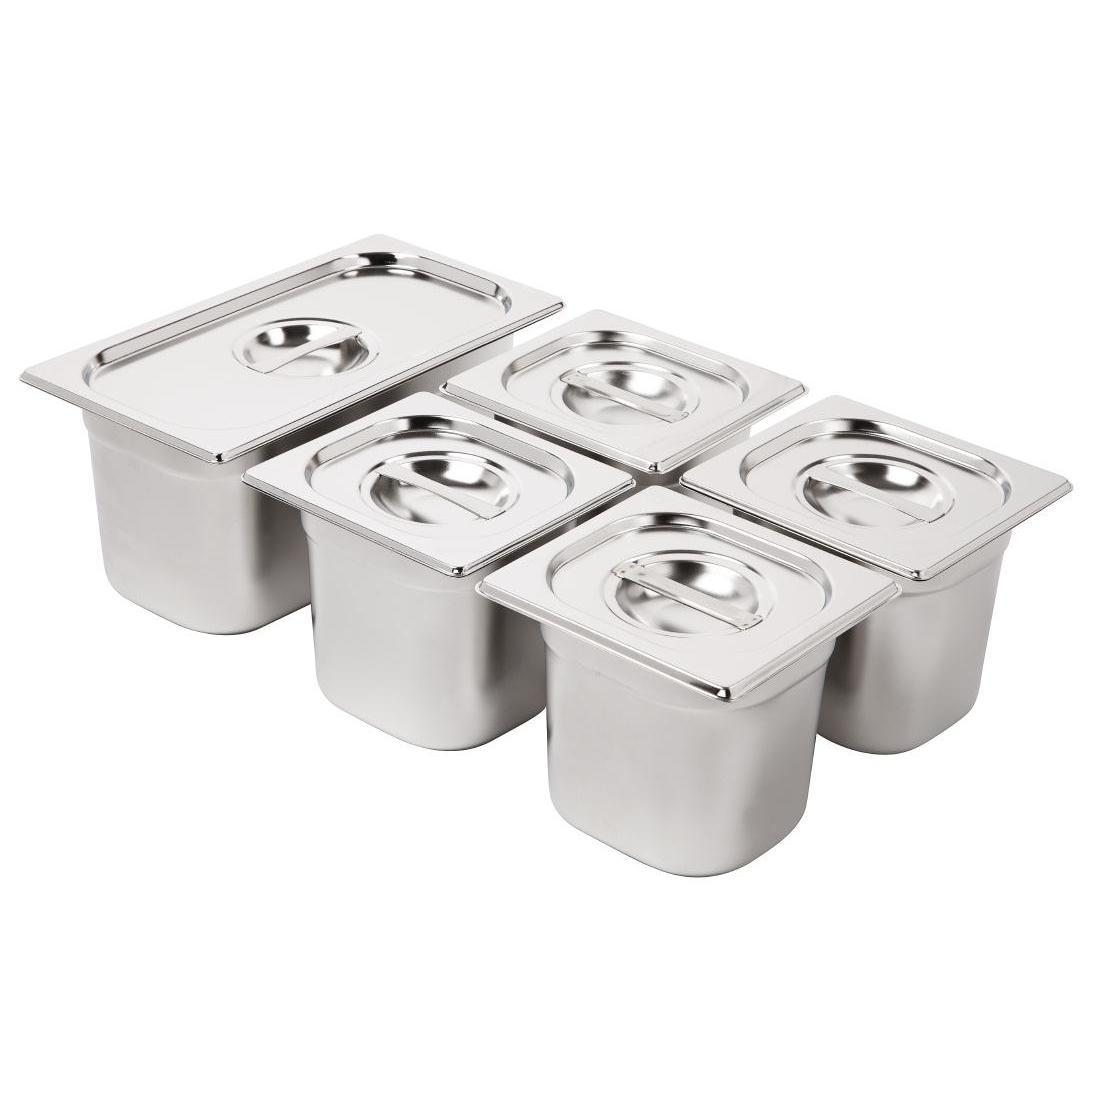 Vogue Stainless Steel Gastronorm Pan Set 1/3 and 4 x 1/6 with Lids - SA246